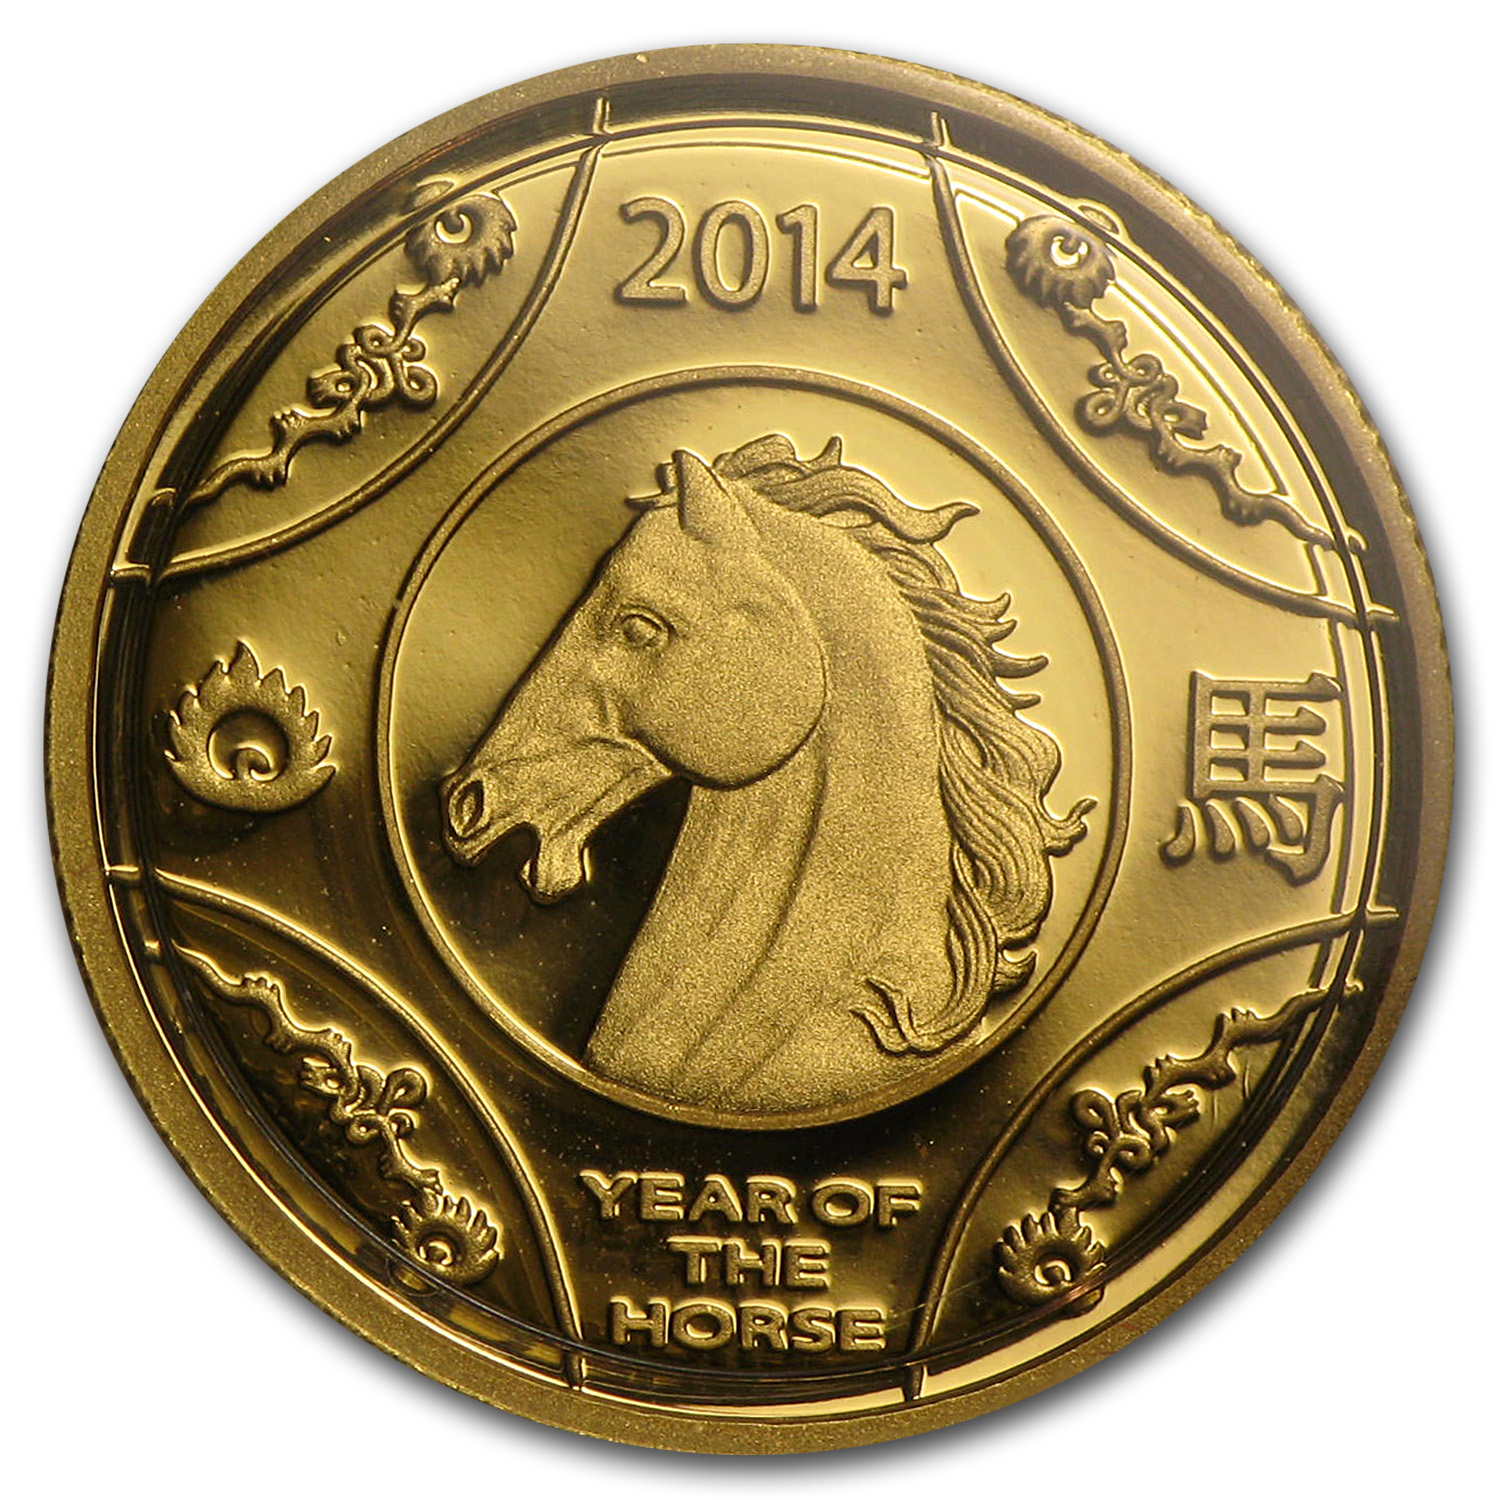 2014 Australia 1/10 oz Proof Gold Year of the Horse